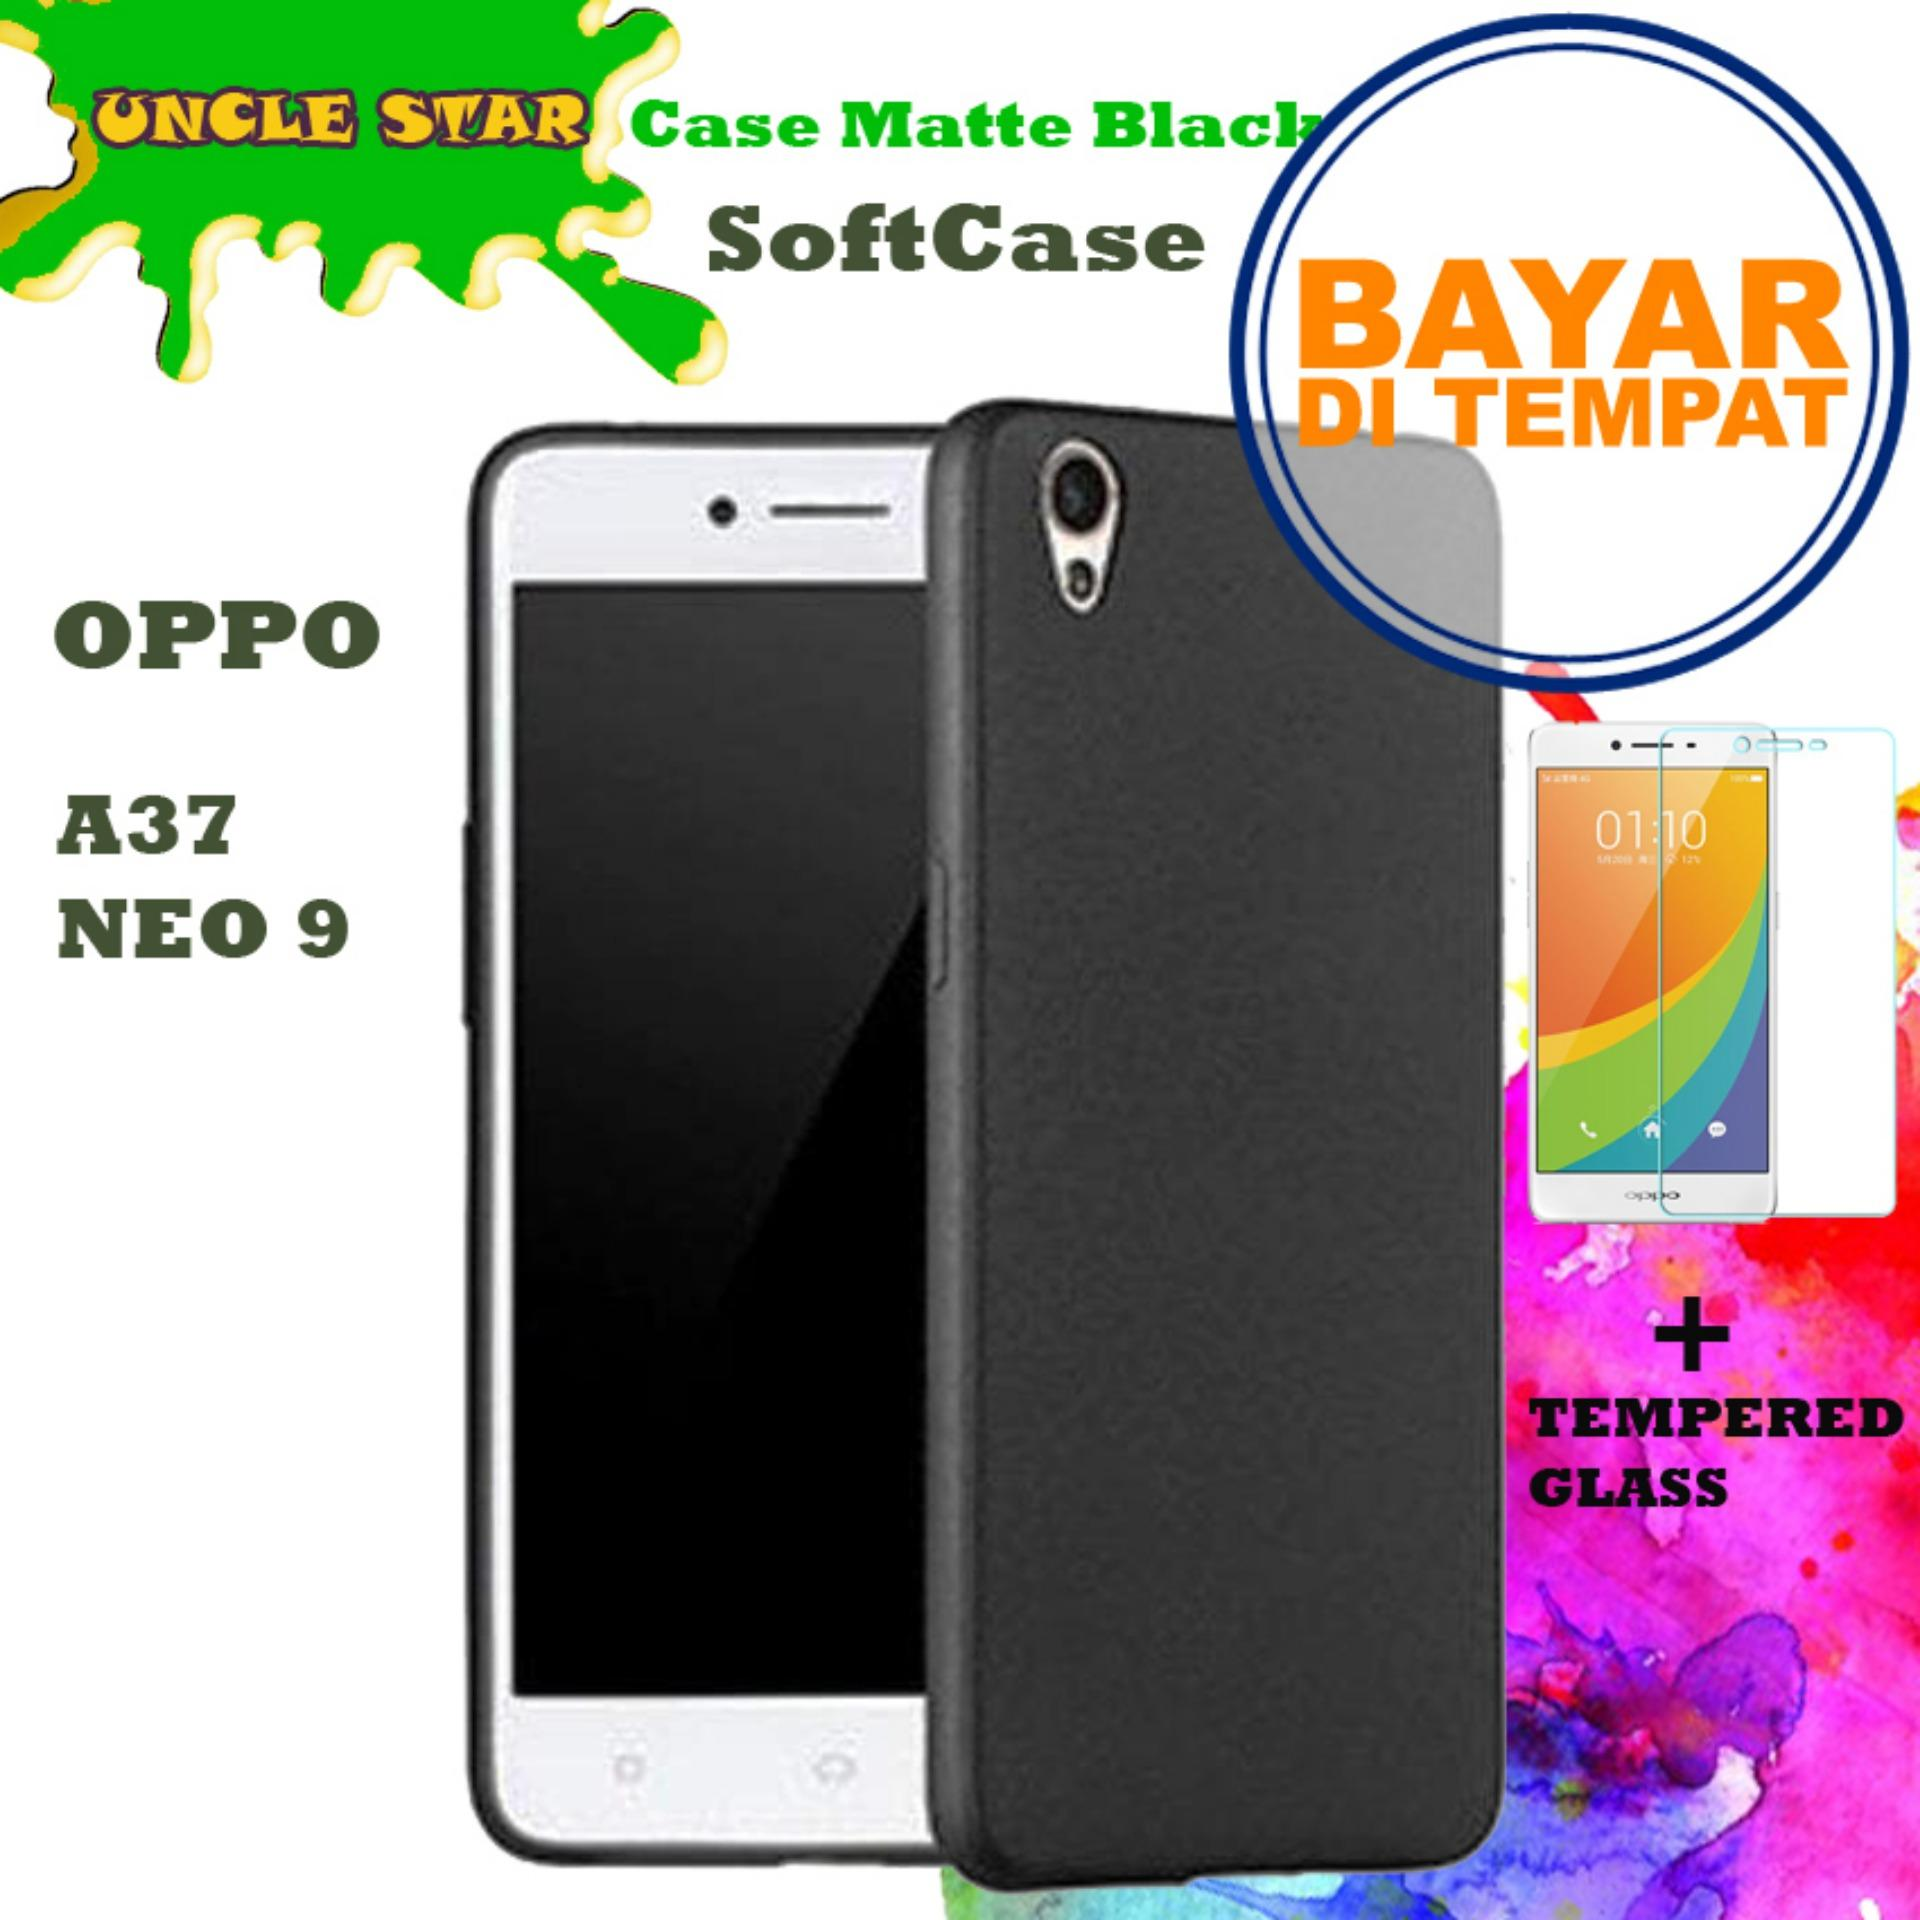 Uncle Star - SOFTCASE Case Matte Black Elegant For Oppo A37 / Neo 9 + Free